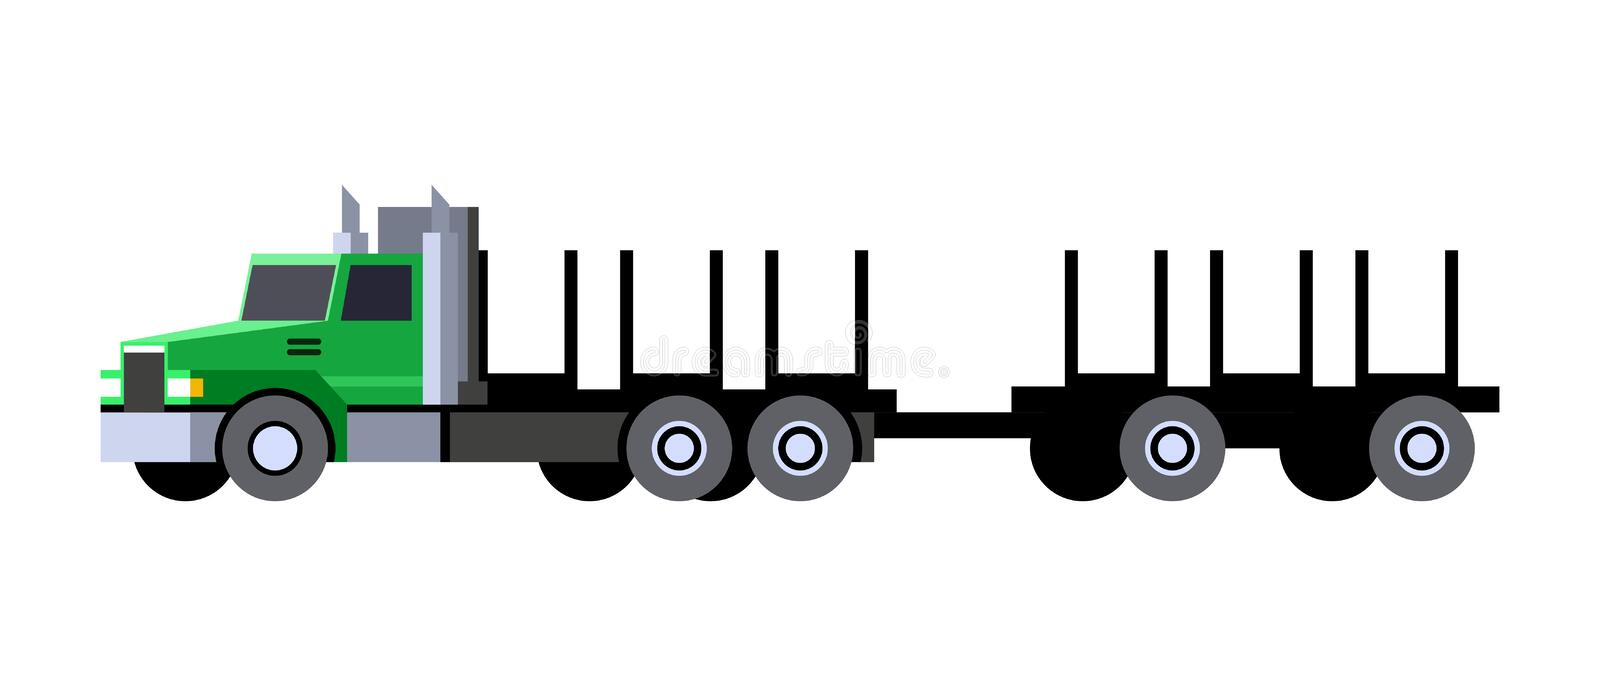 Logging truck with trailer cart royalty free illustration